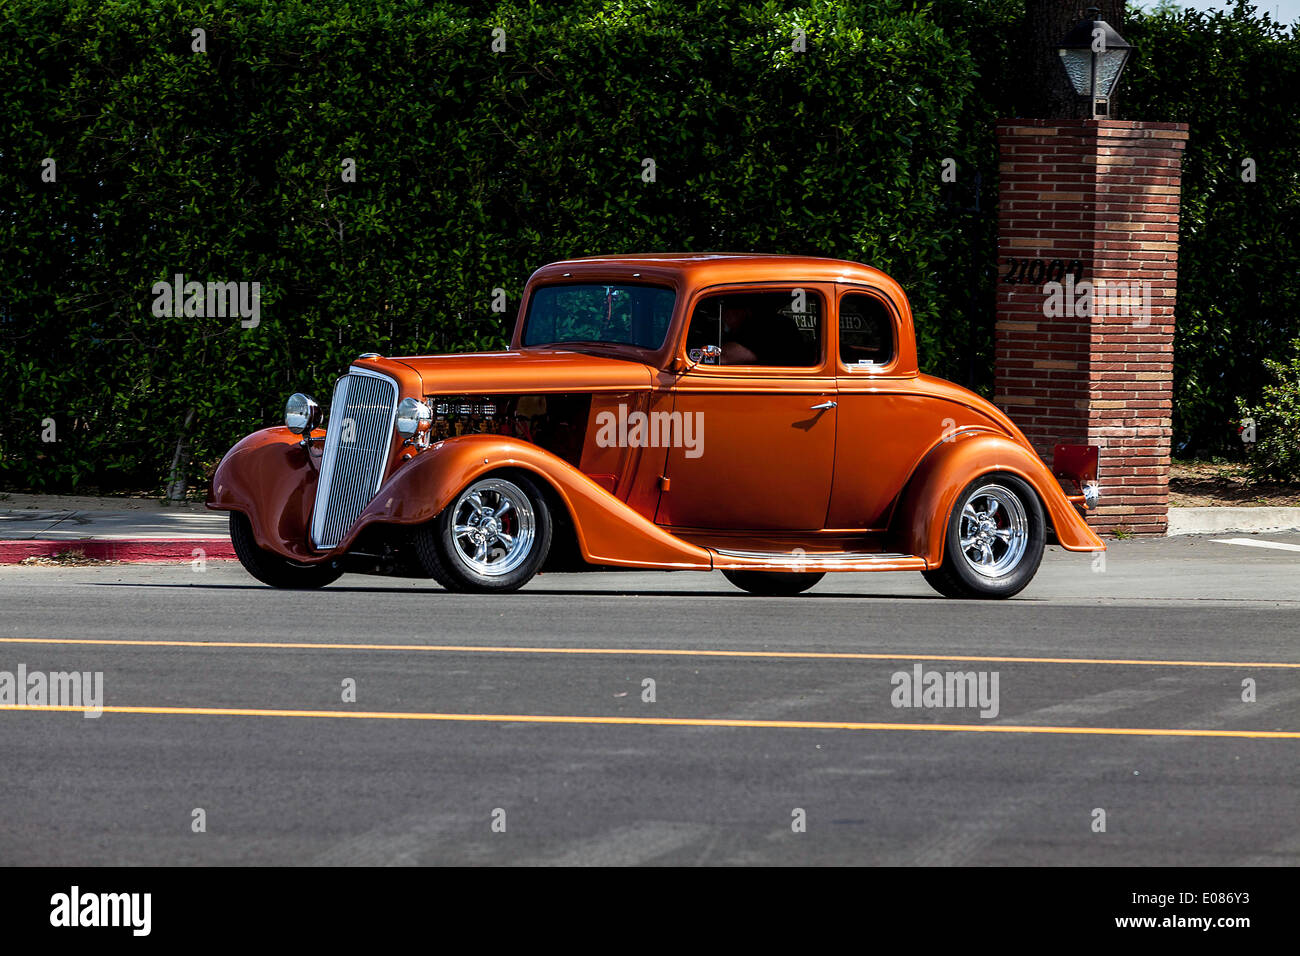 A 1934 chevy 5 window coupe stock photo royalty free for 1934 chevy 5 window coupe